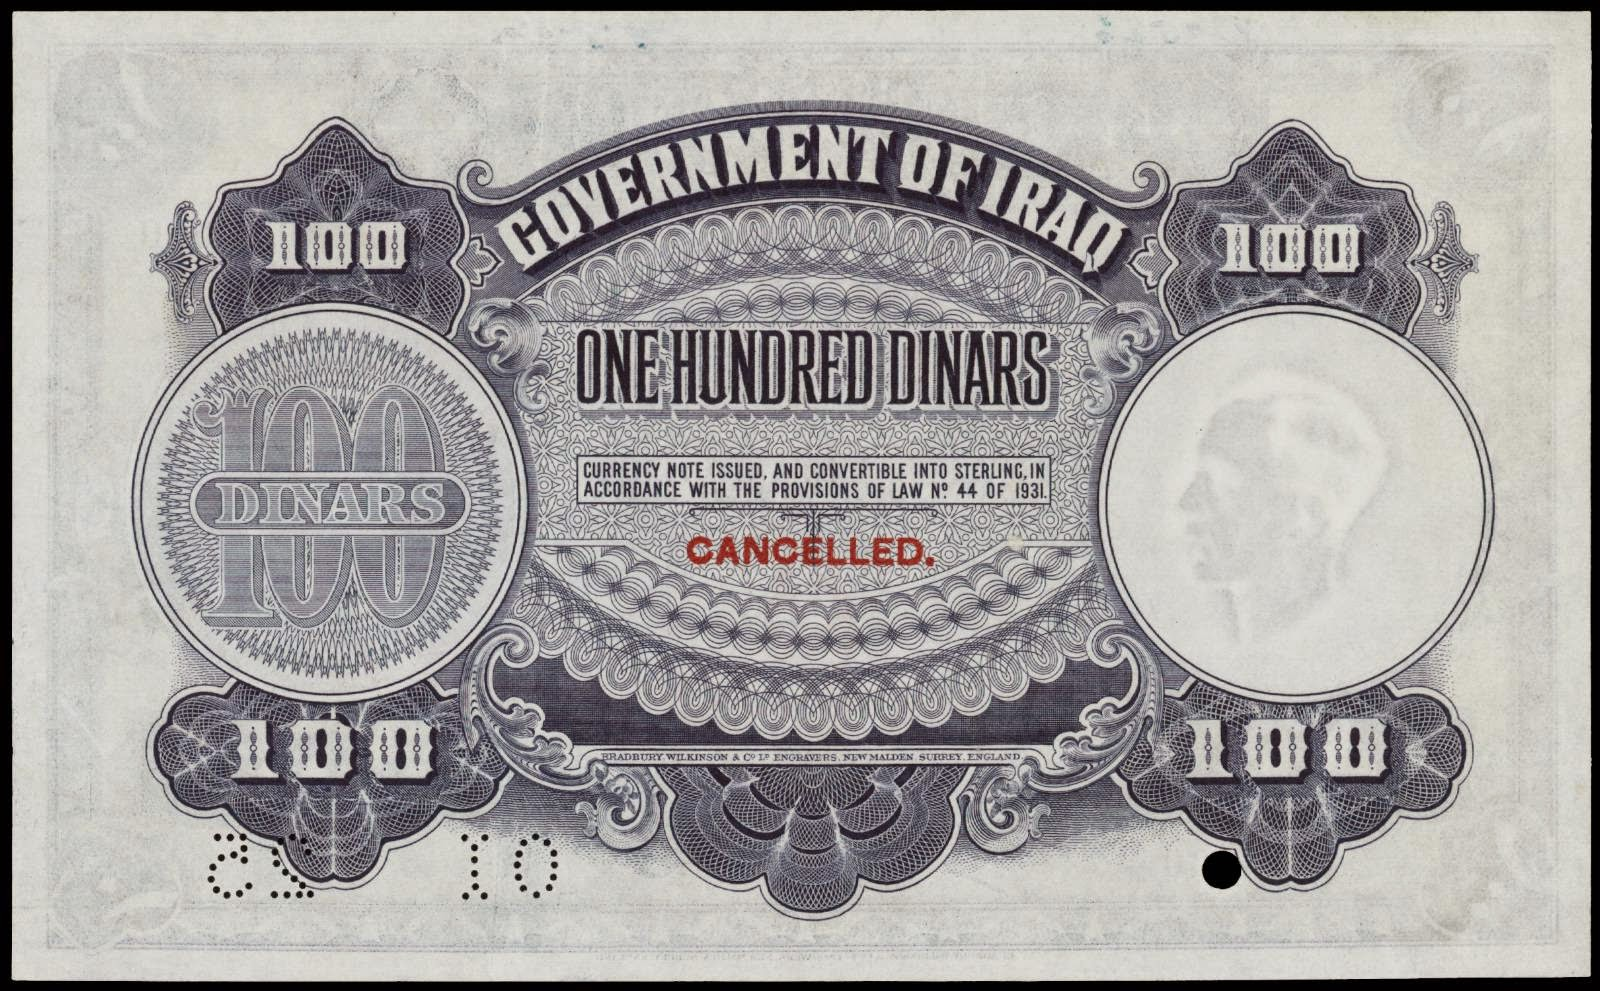 Iraq Currency Board One Hundred Dinars